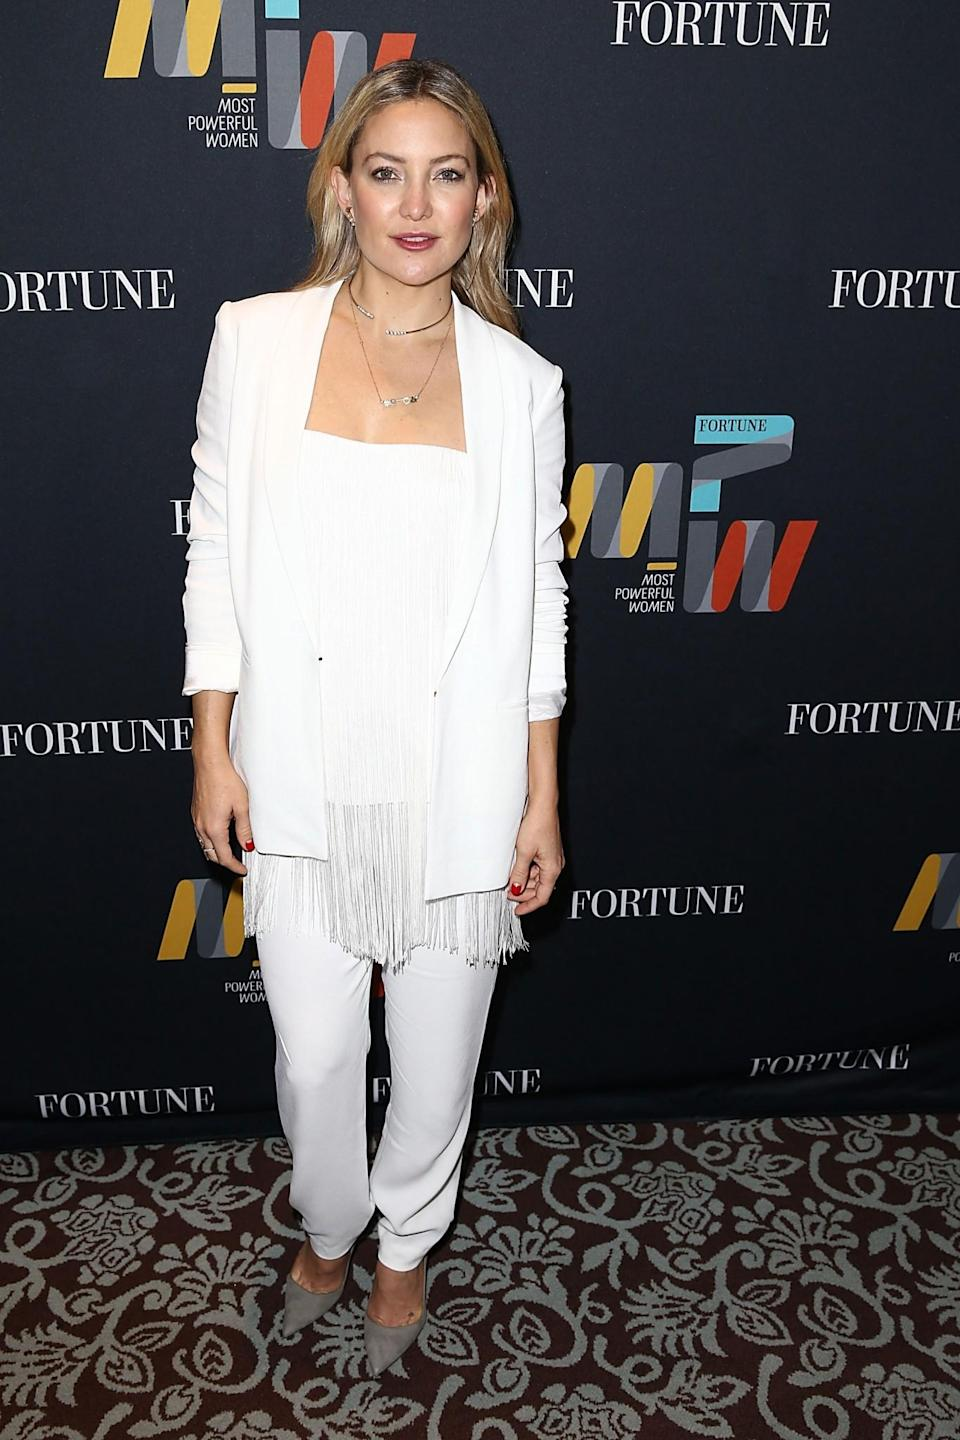 <p>Kate's donned an all-white trouser suit on numerous occasions, most recently at the Fortune Most Powerful Women Summit event in LA last month. </p>